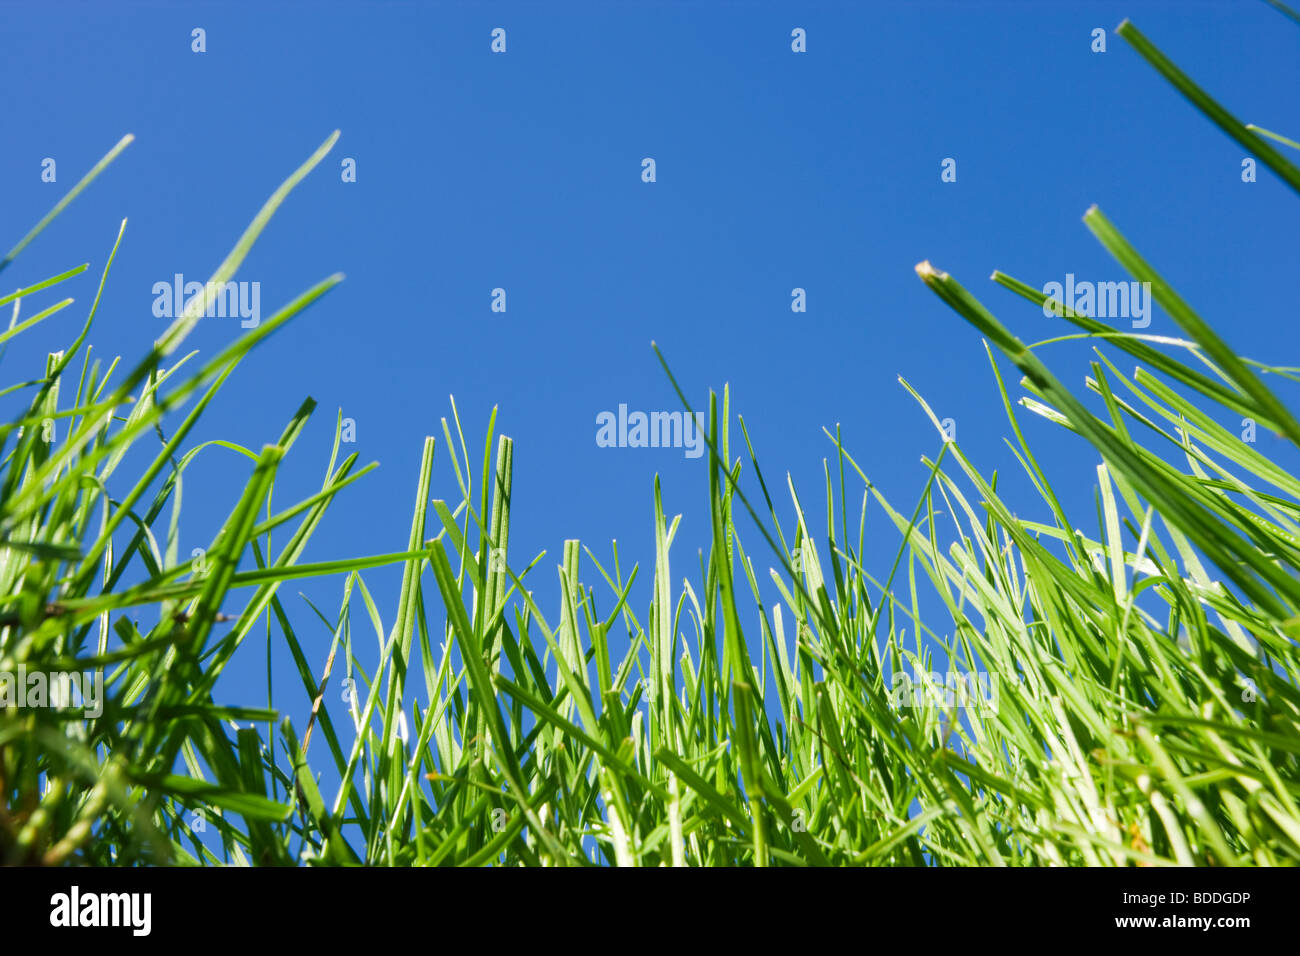 Grass. Lawn viewed from ground level. - Stock Image